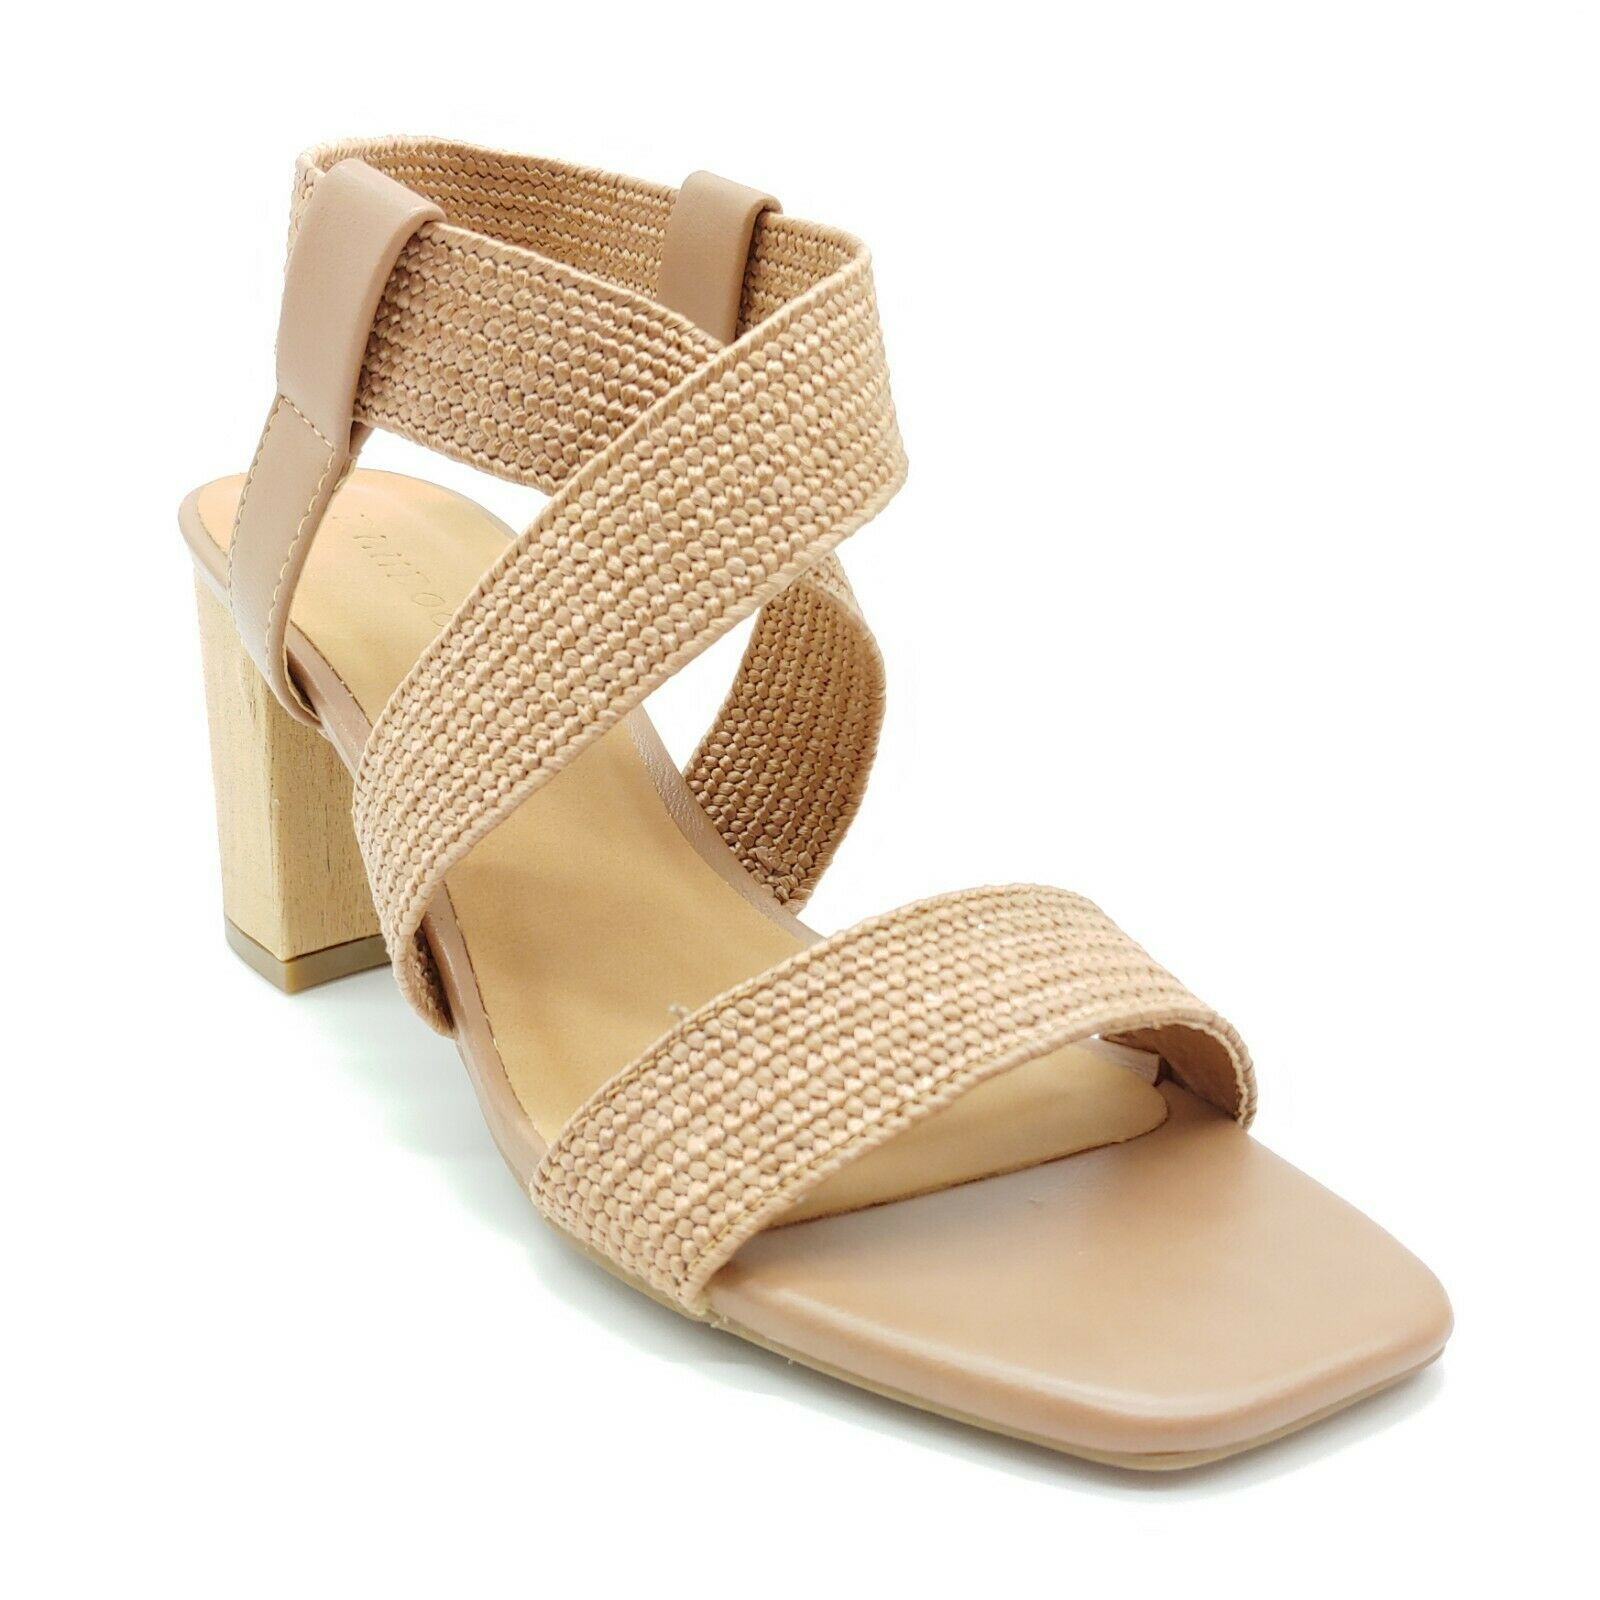 Bamboo Womens Forever 13 Braided Sandal Tan Cushioned Insole Sz 7.5 M NEW - $24.64